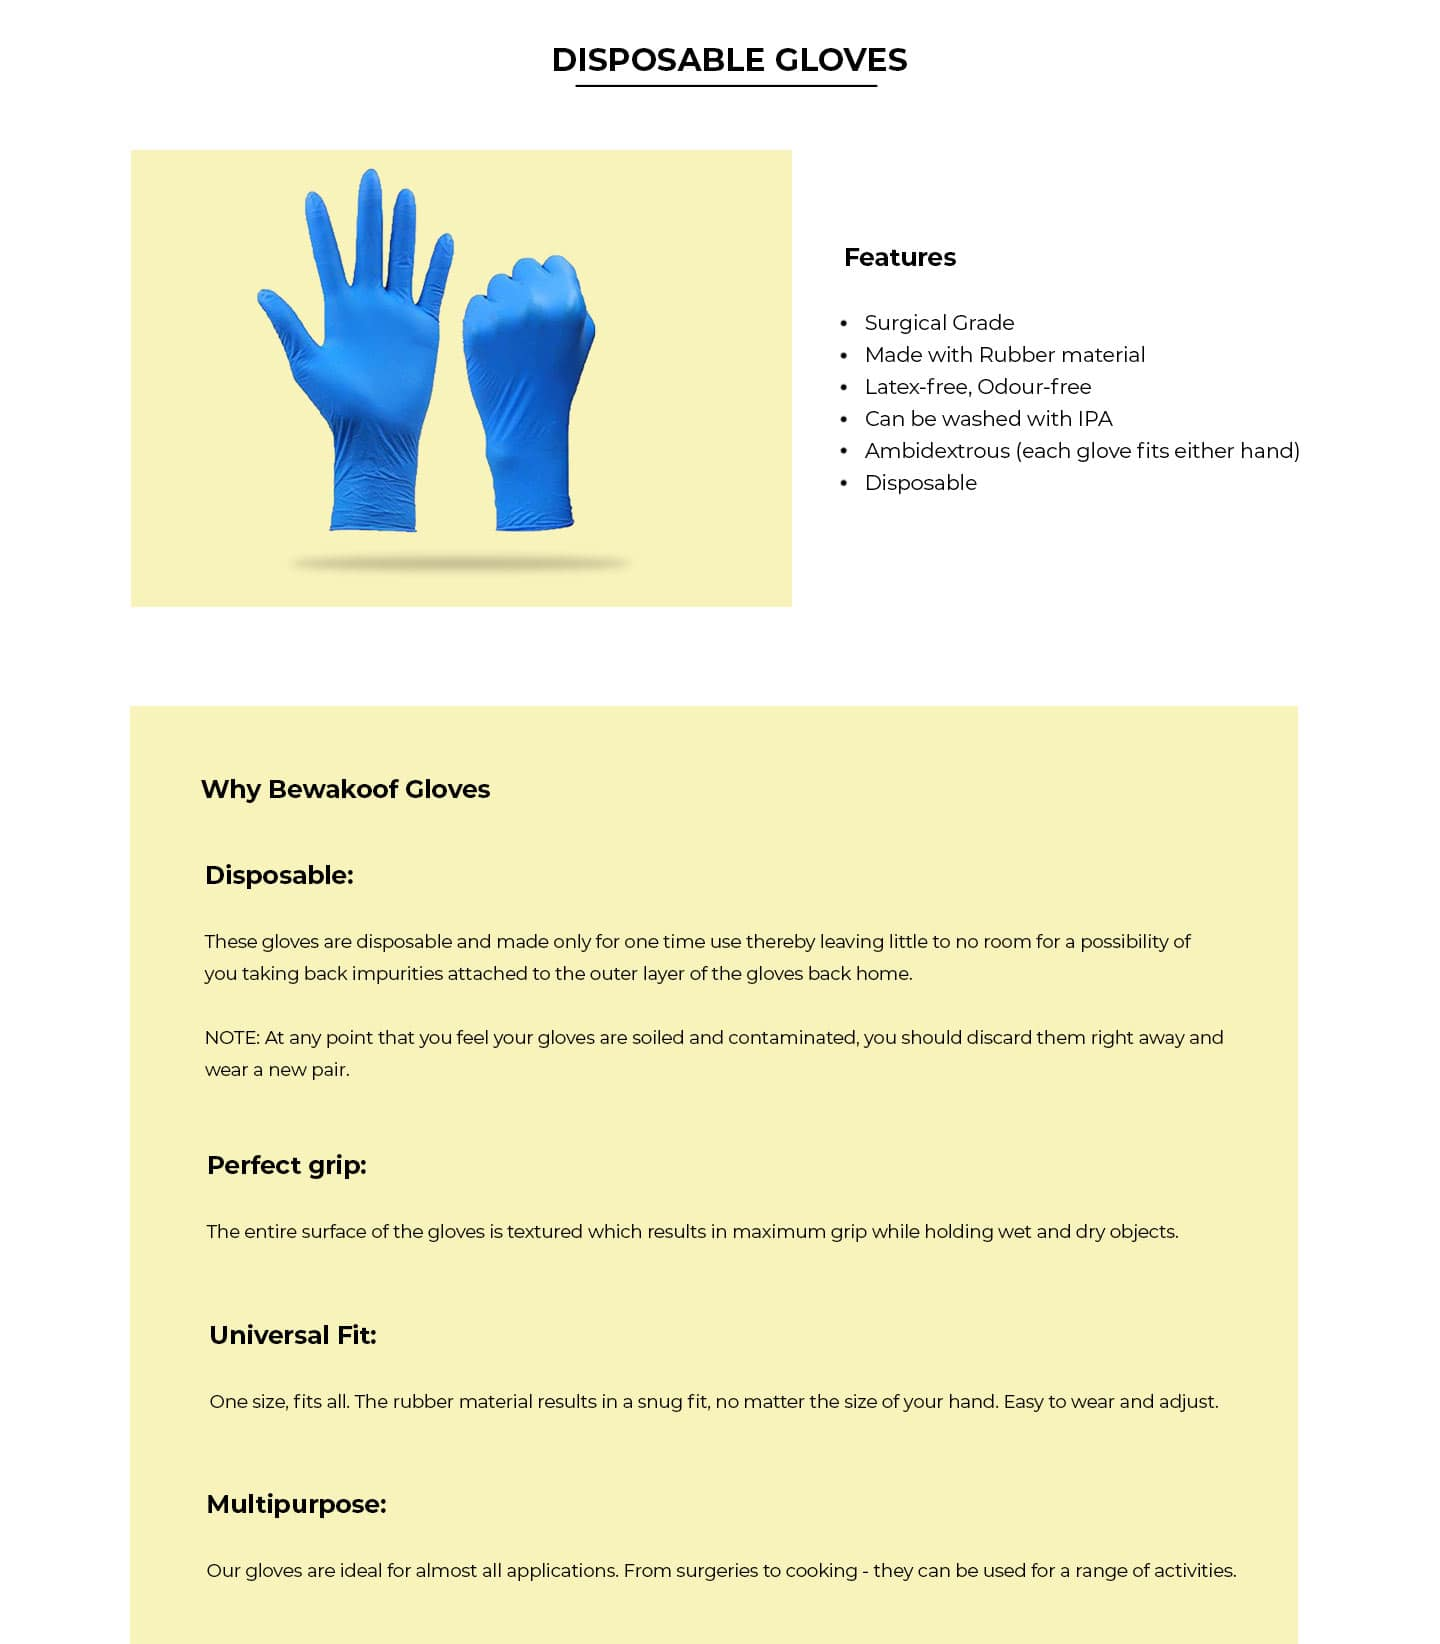 Disposable Hand Gloves (Pack of 50) Description Image Website 0@Bewakoof.com